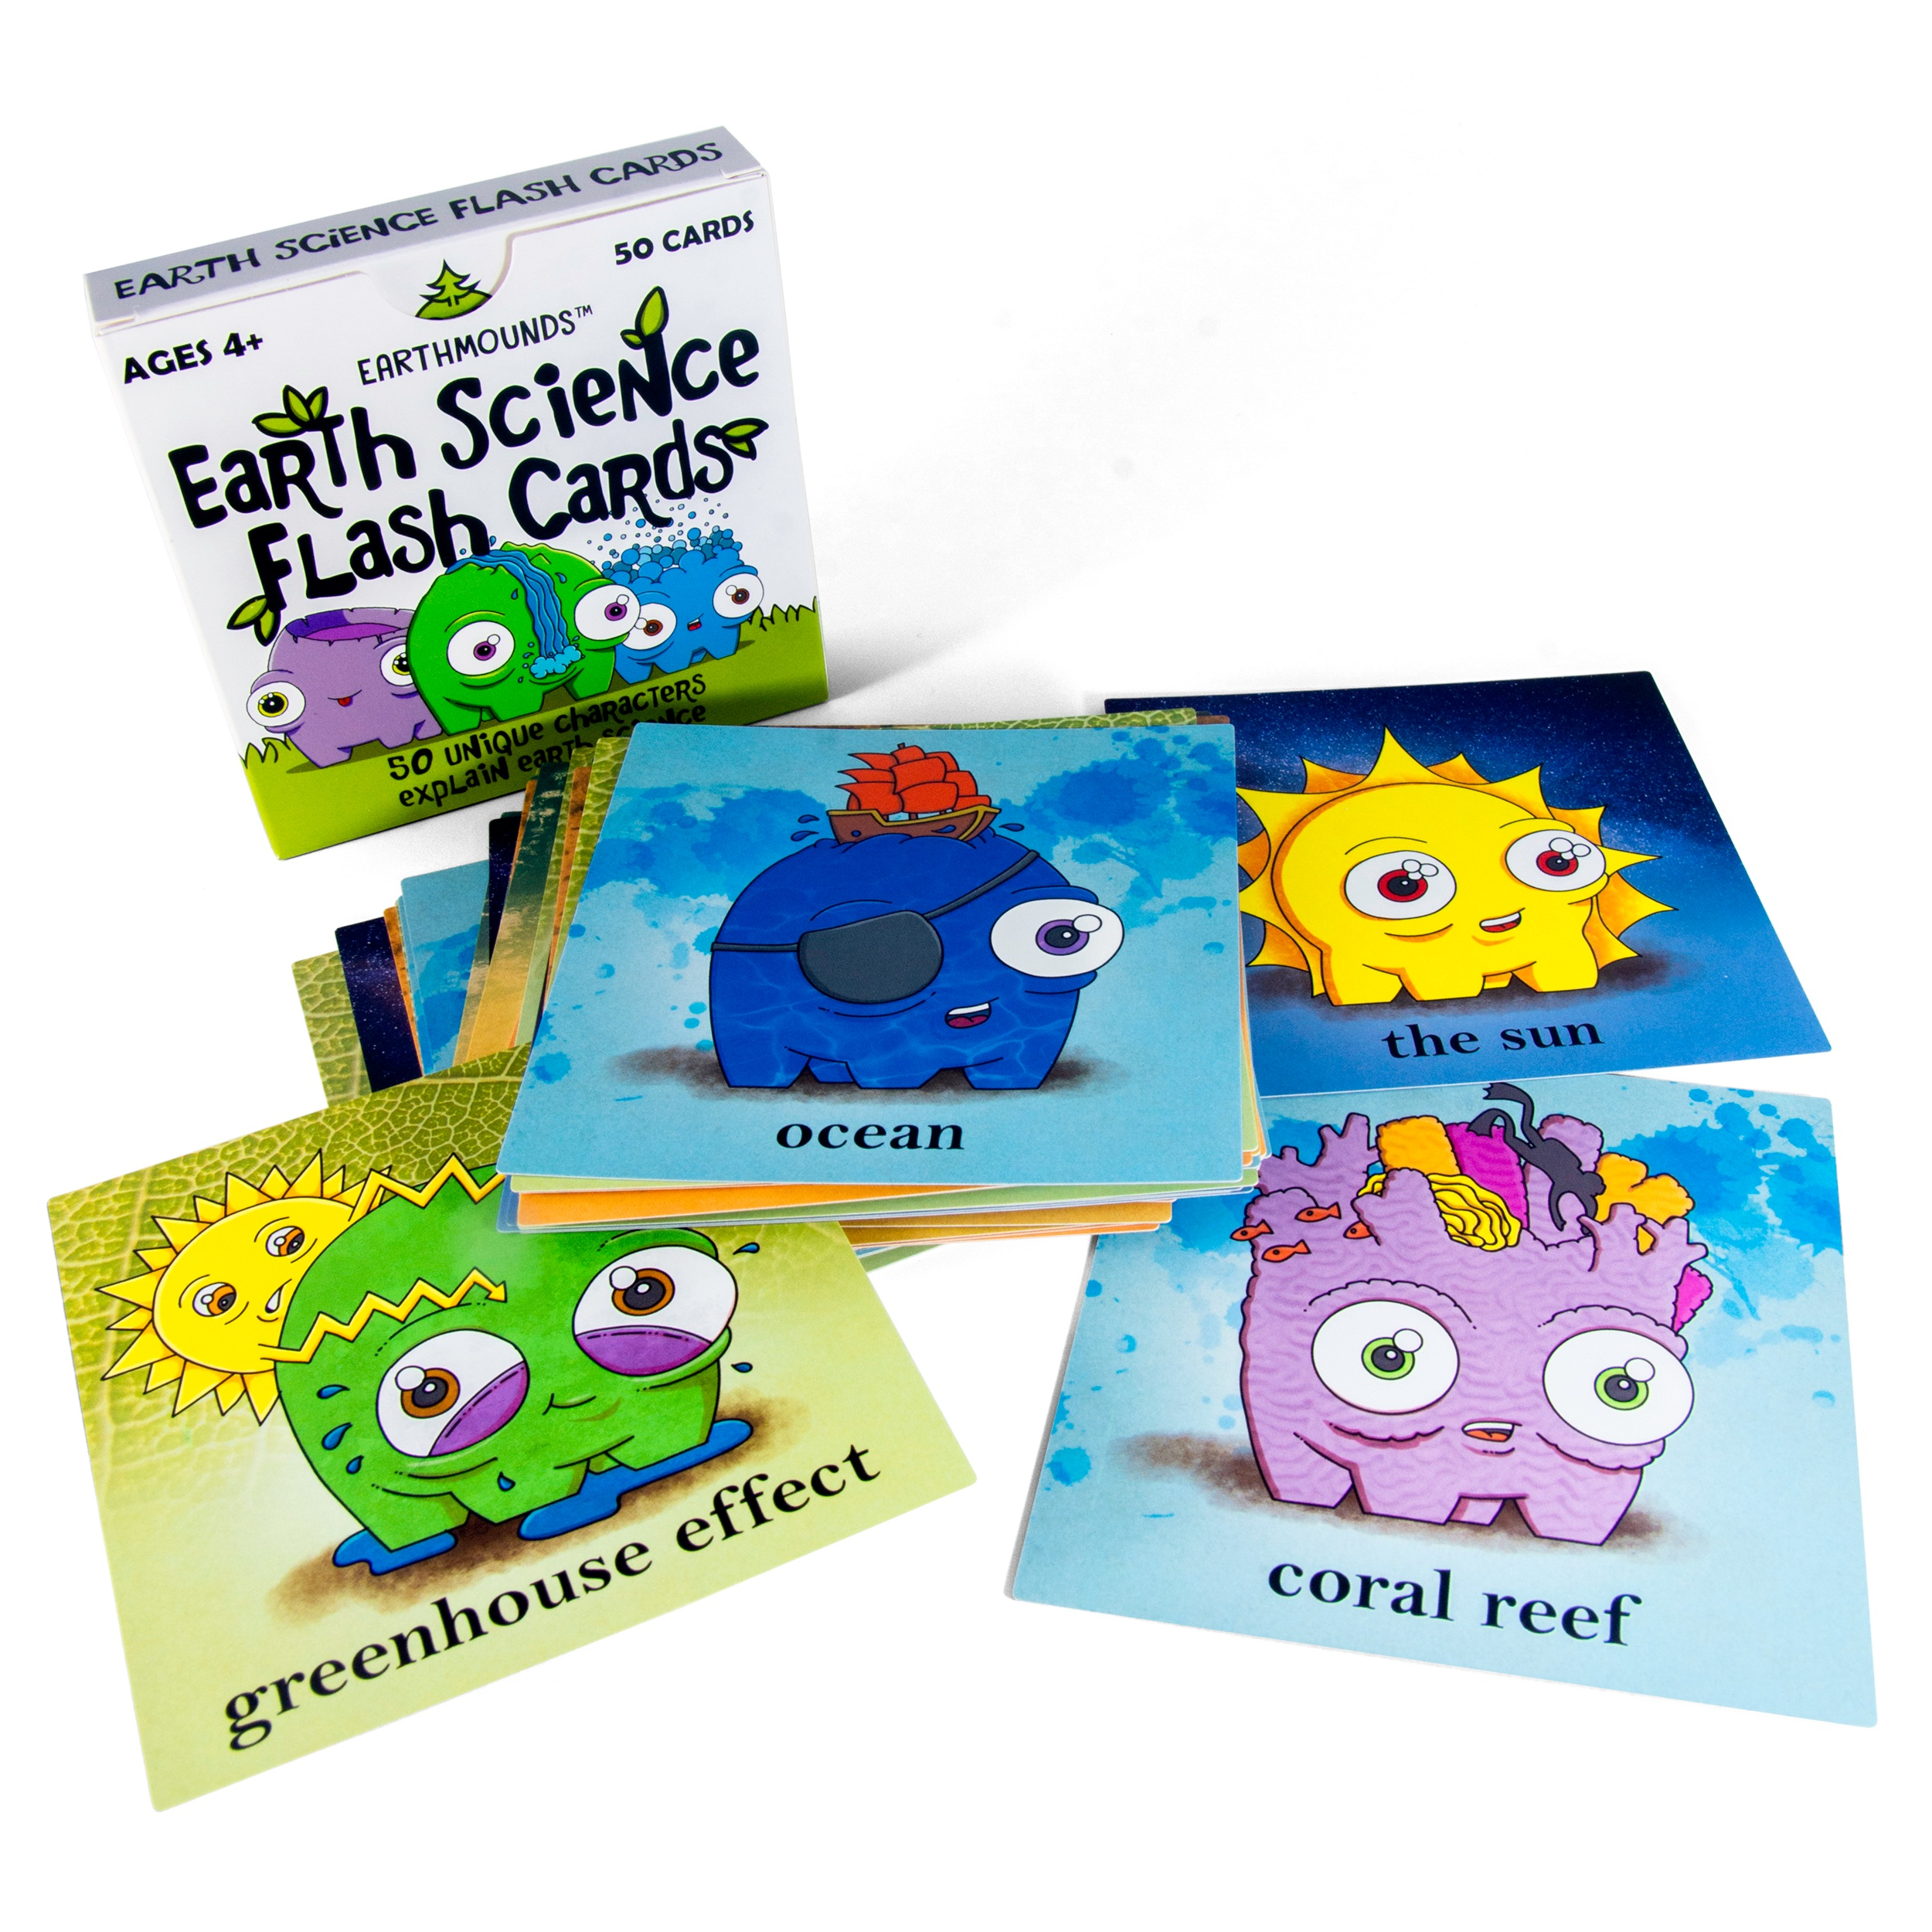 Merchandise - We have a set of 50 educational flashcards on the market, with our second edition set for a Q4 2019 release. Earthmounds characters are ripe for merchandising: collectible Shopkins-style mini figurines, cuddly plushes, and more!